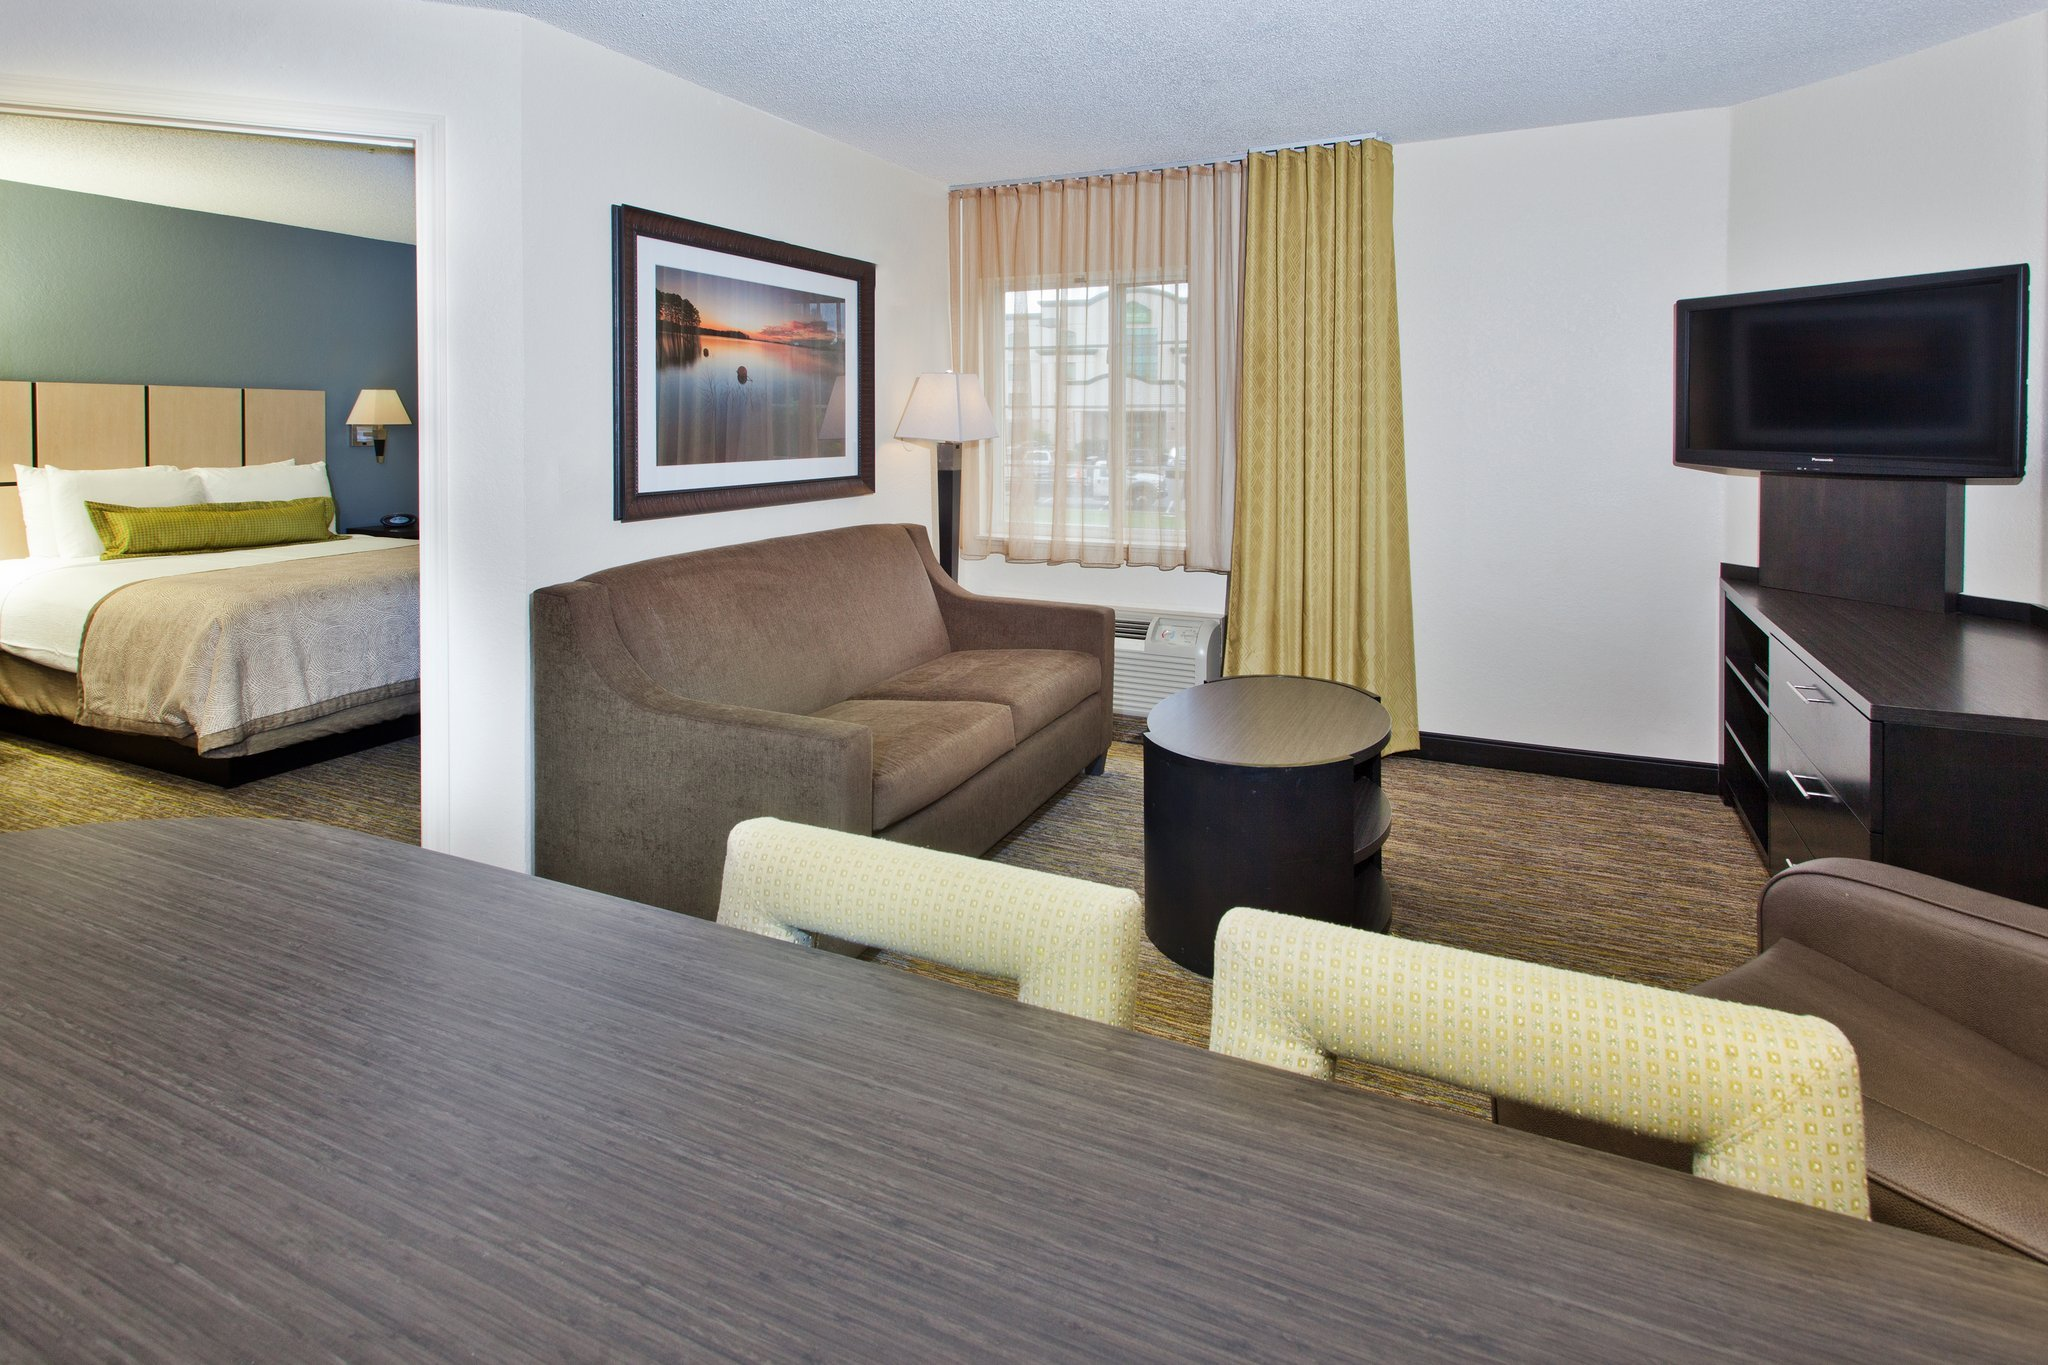 Candlewood Suites - Charlotte University